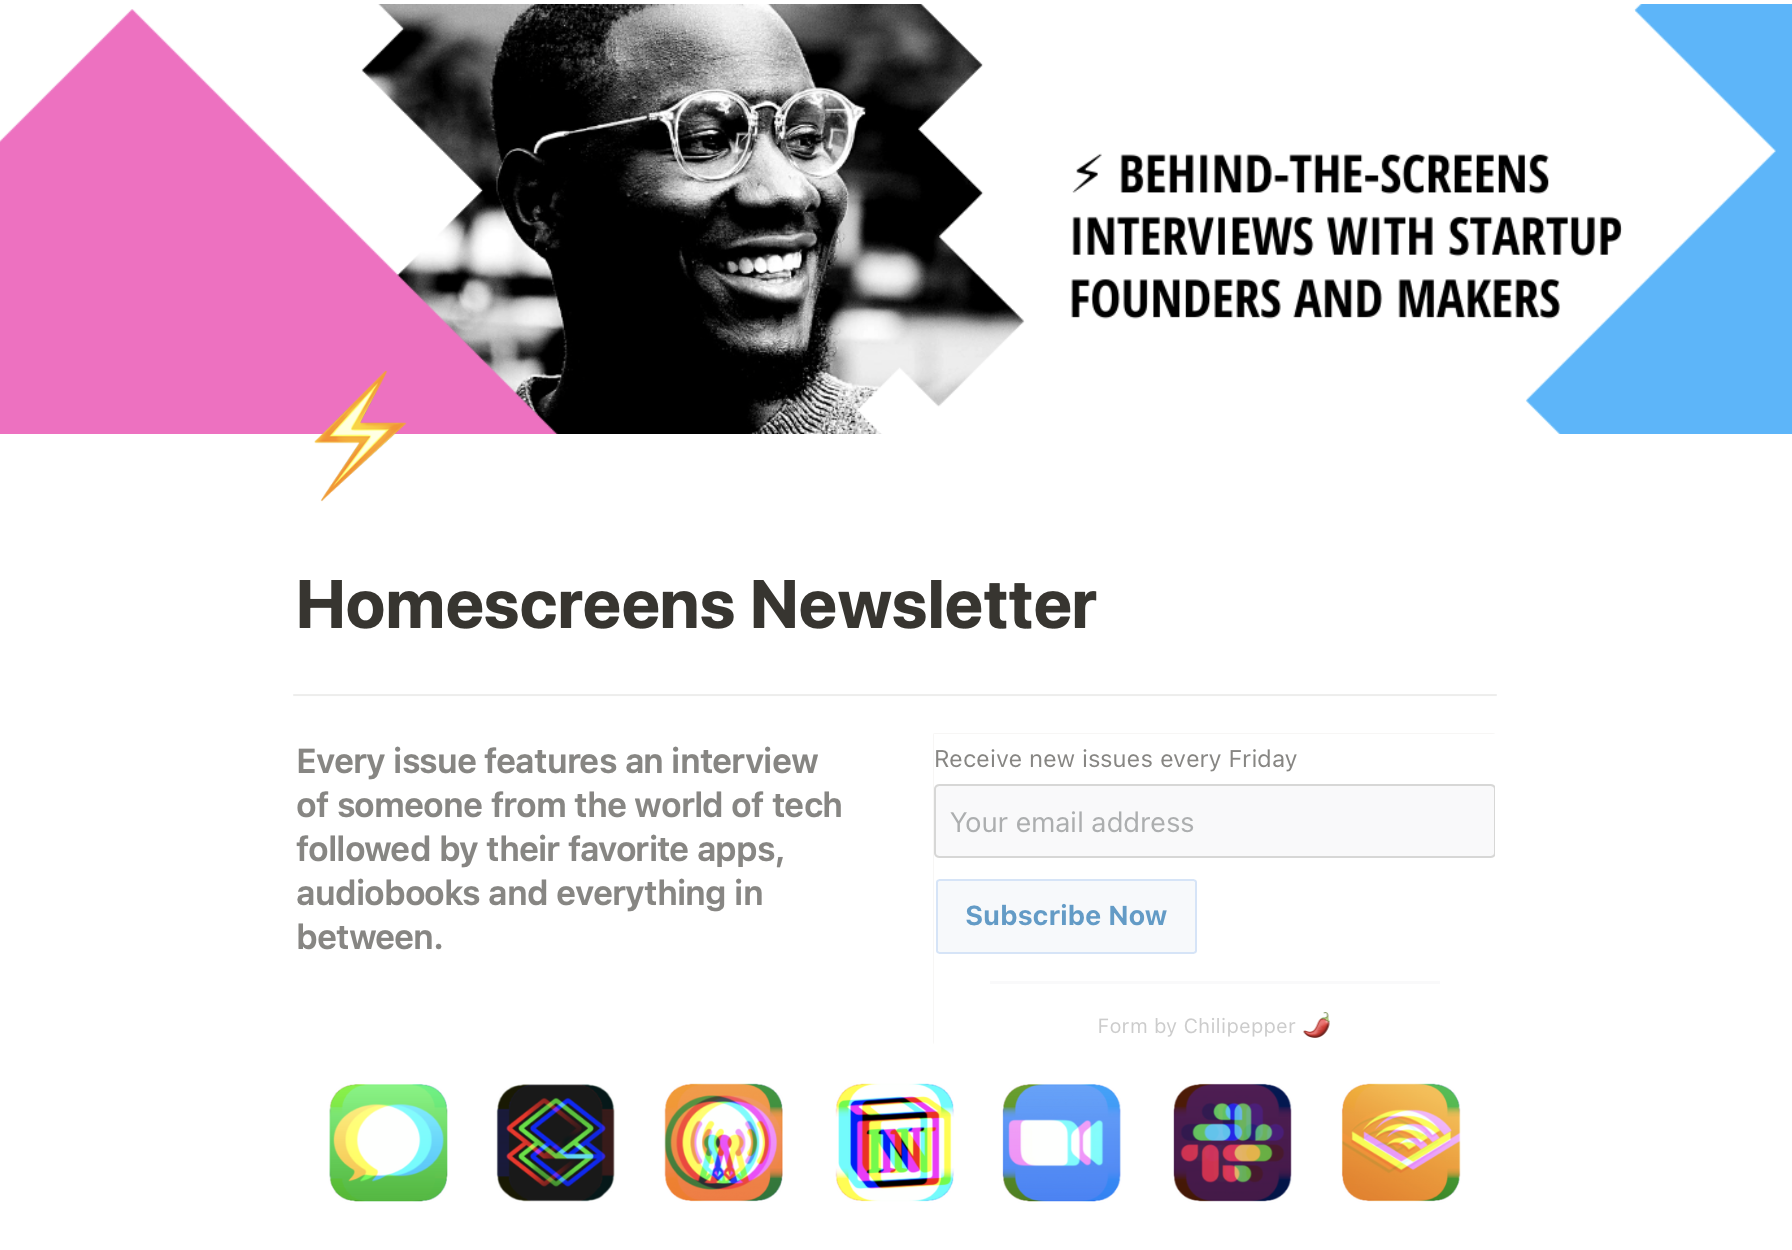 Homescreens Newsletter